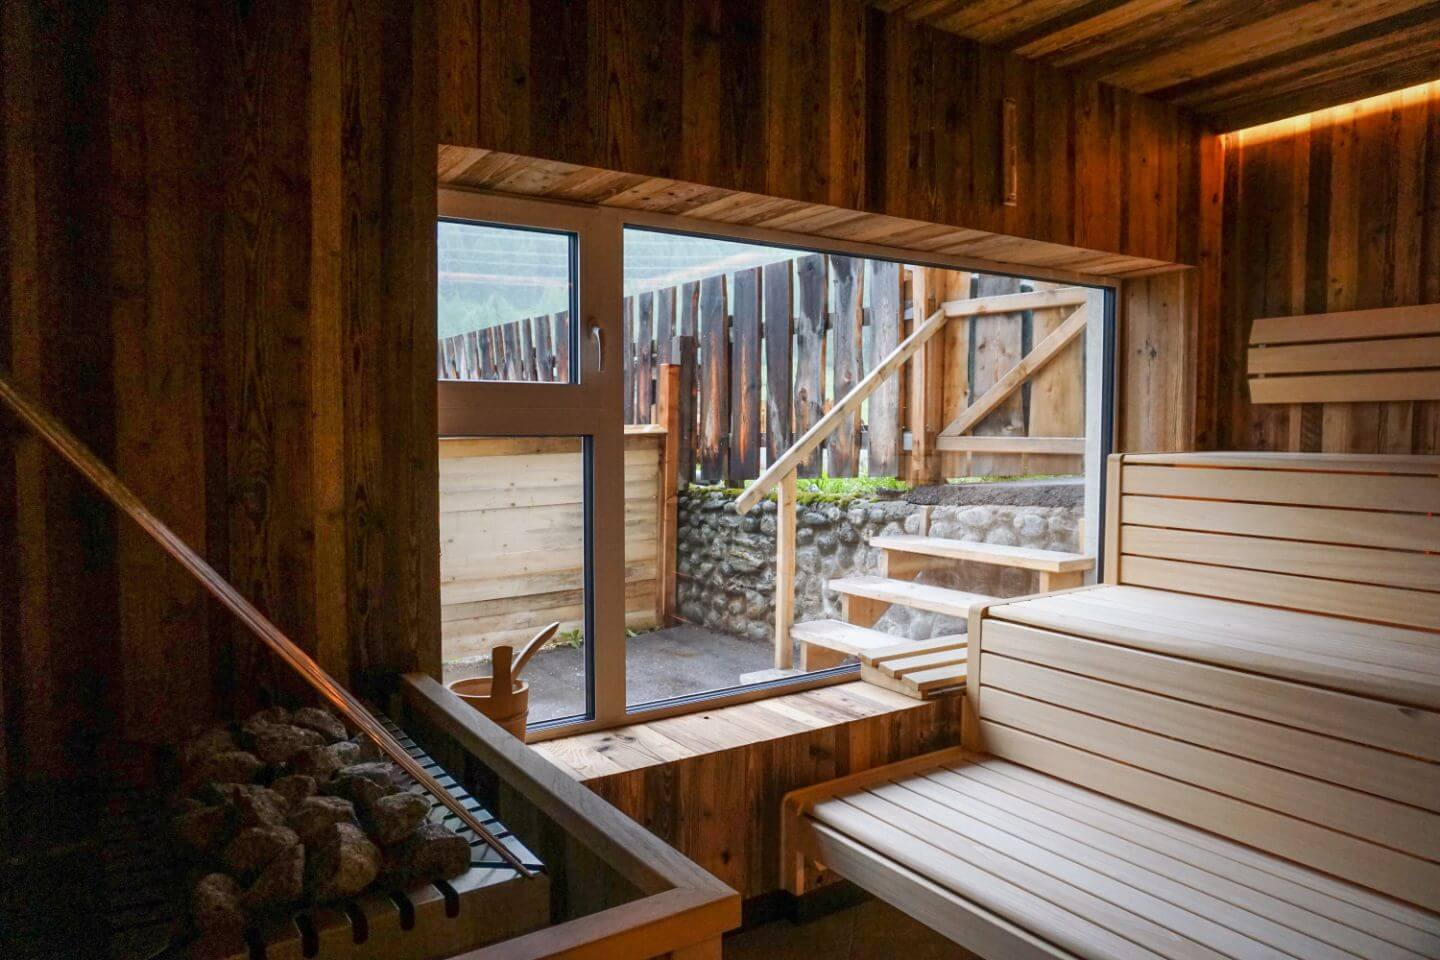 Sauna, Matreier Tauernhaus, Hohe Tauern, Austria - Secret Escape in the Austrian Alps